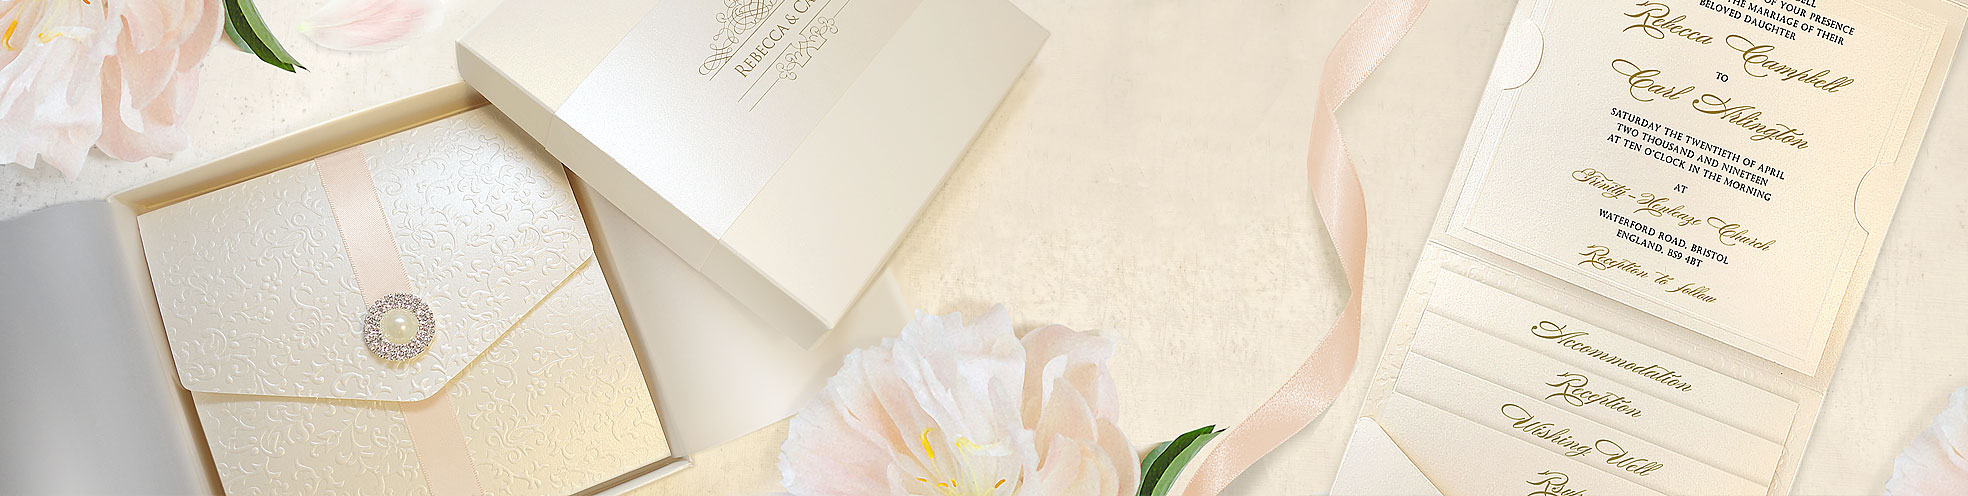 Luxury Wedding Invitations UK Stationery Online Polina Perri – Exclusive Wedding Invitation Cards